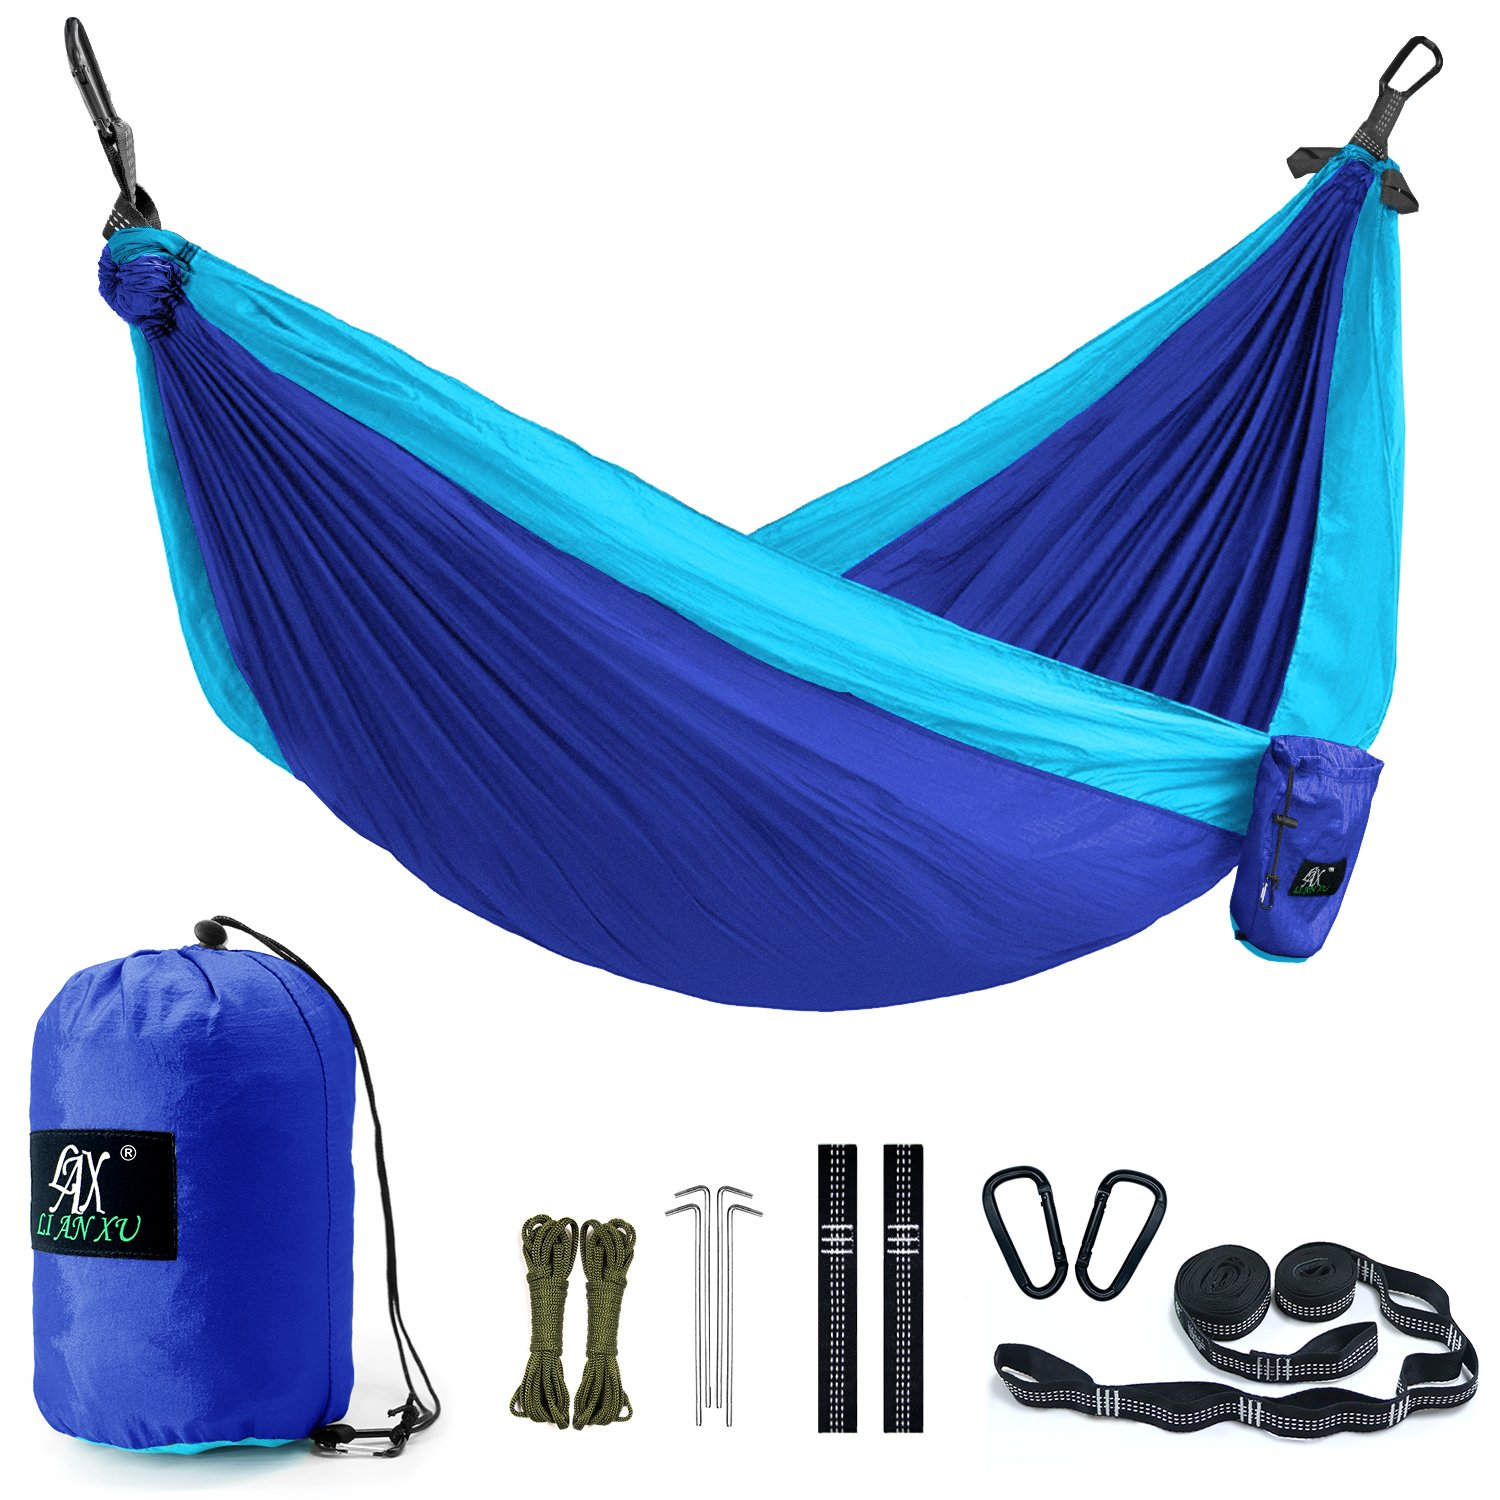 Camping Hammock, LAX Portable Double Durable Hammock for Backpacking, Travel, Hiking, Beach, Yard, Multi-Functional Lightweight Nylon Parachute Hammocks with Heavy Duty Straps (Blue/Sky Blue) by LAX LI AN XU